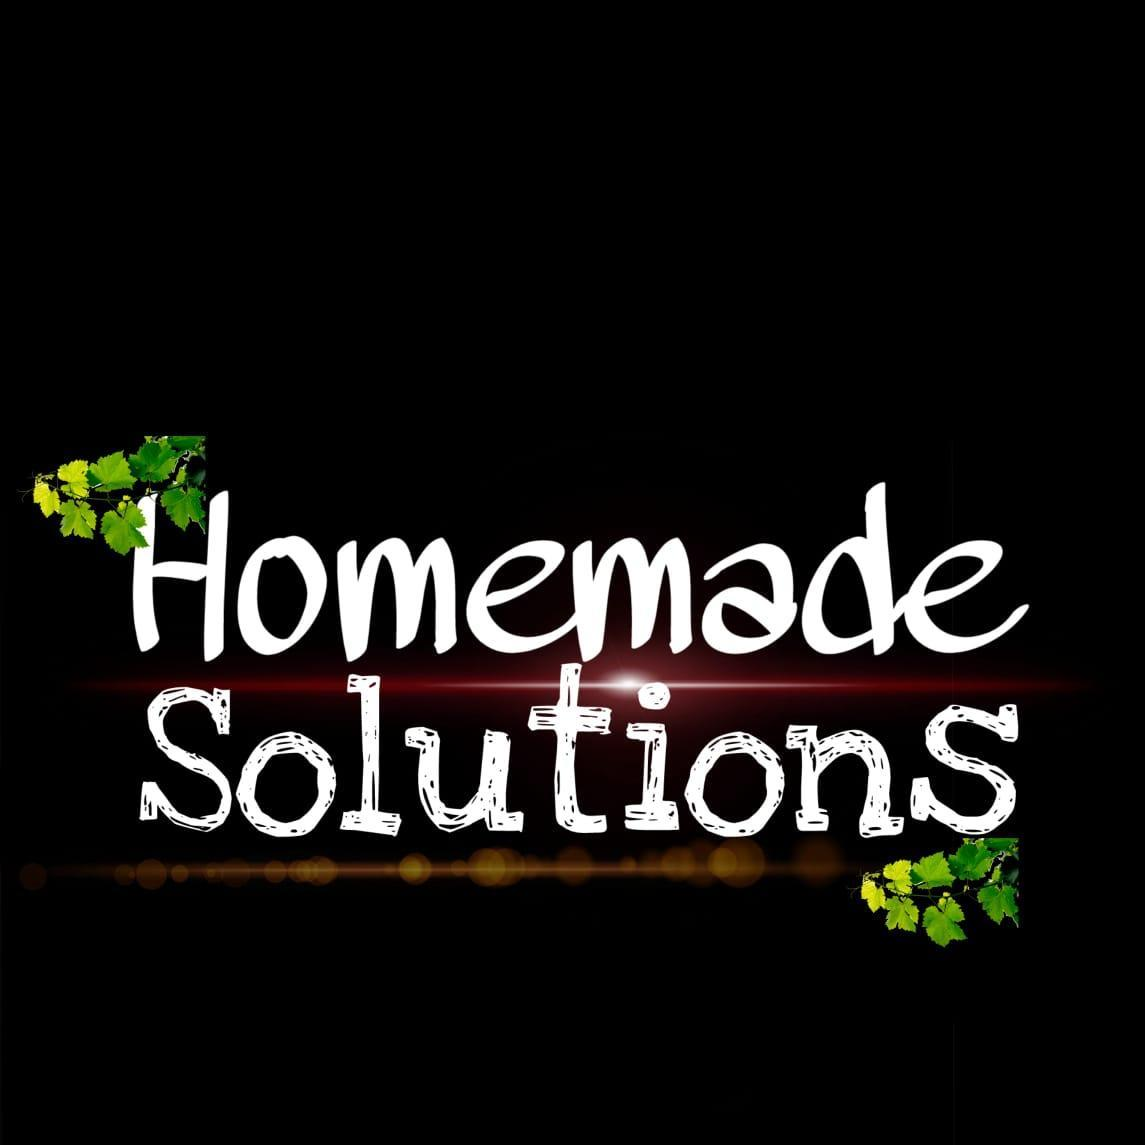 Homemade Solution Videos For Android Apk Download